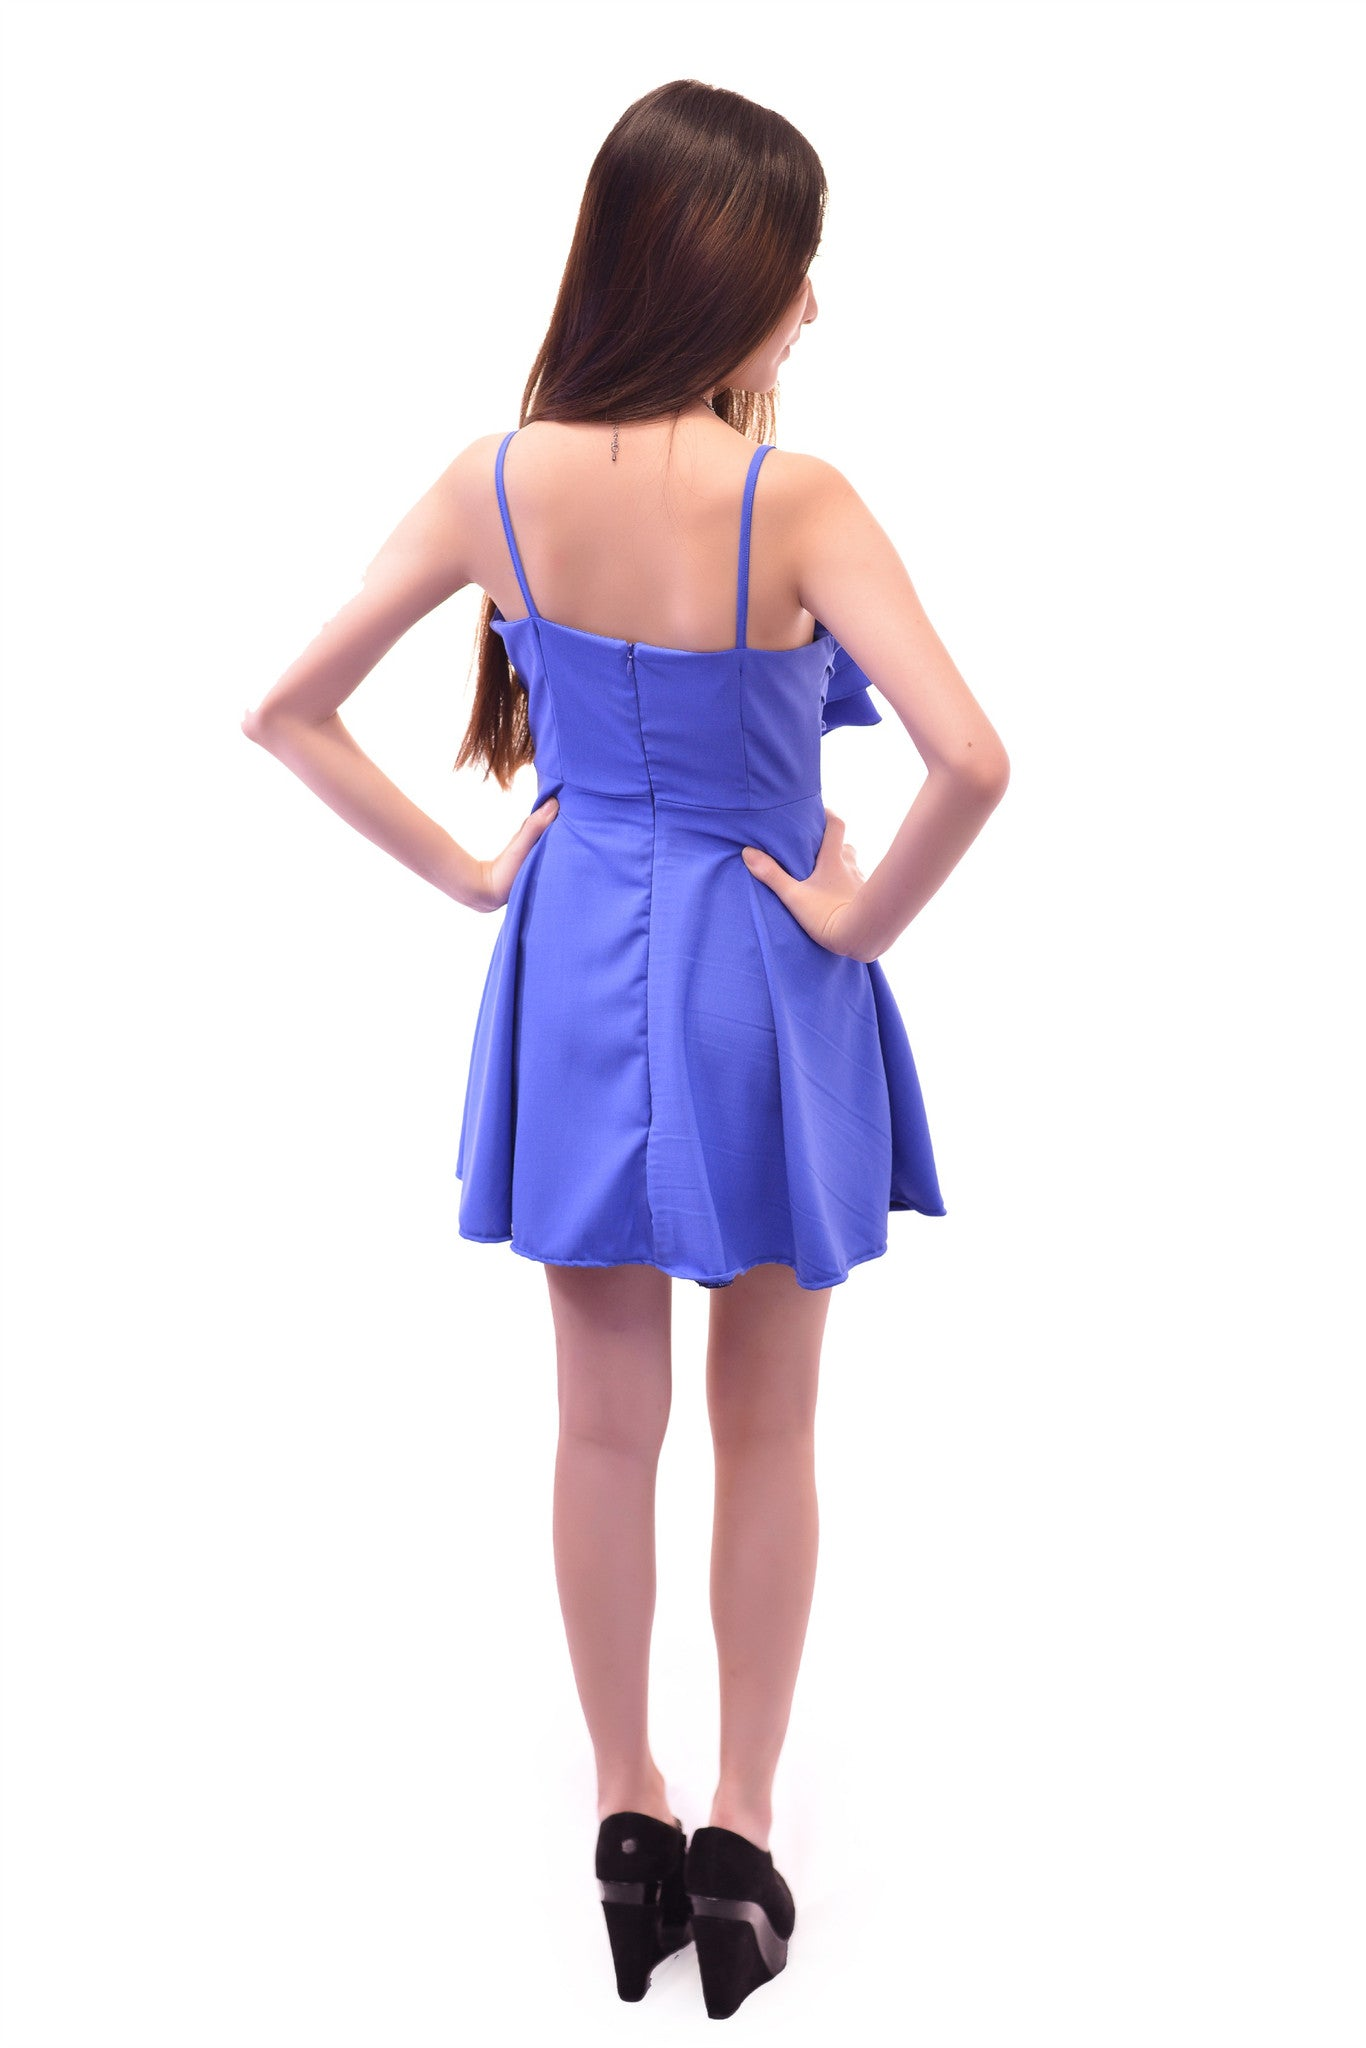 CASUAL AFFAIR DRESS IN BLUE